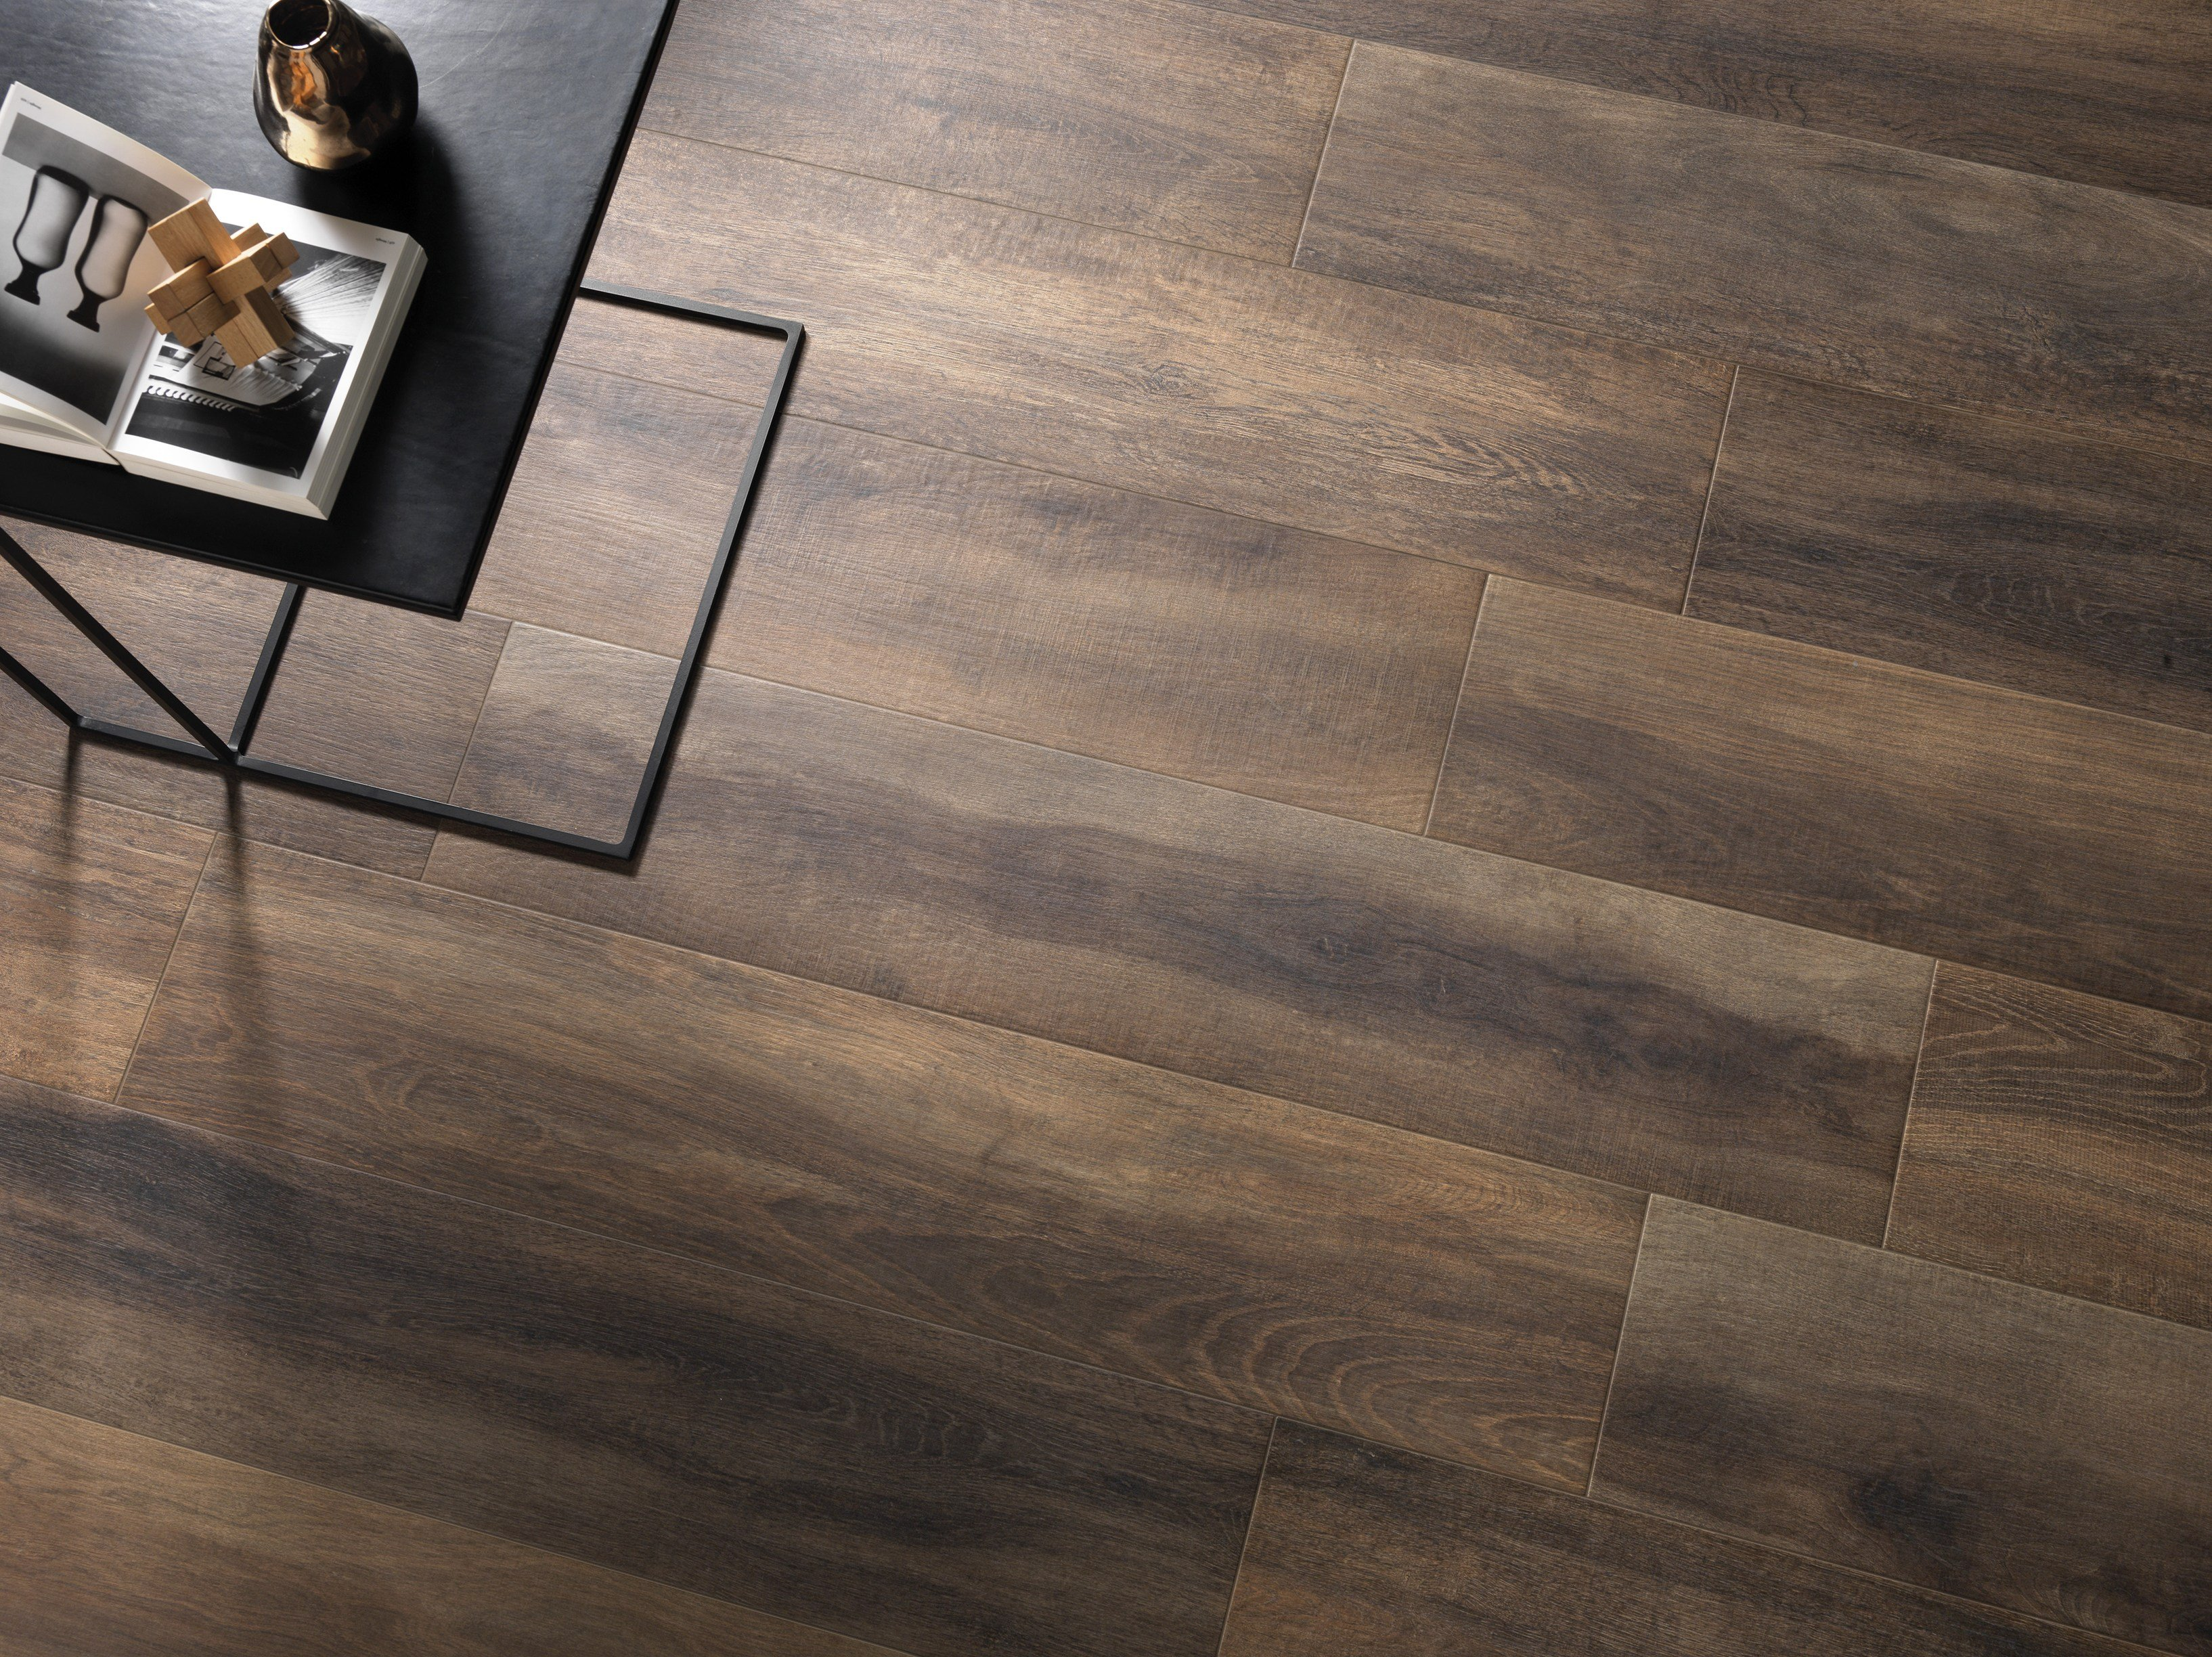 Glazed stoneware flooring with wood effect greenwood by - Ceramica rondine ...